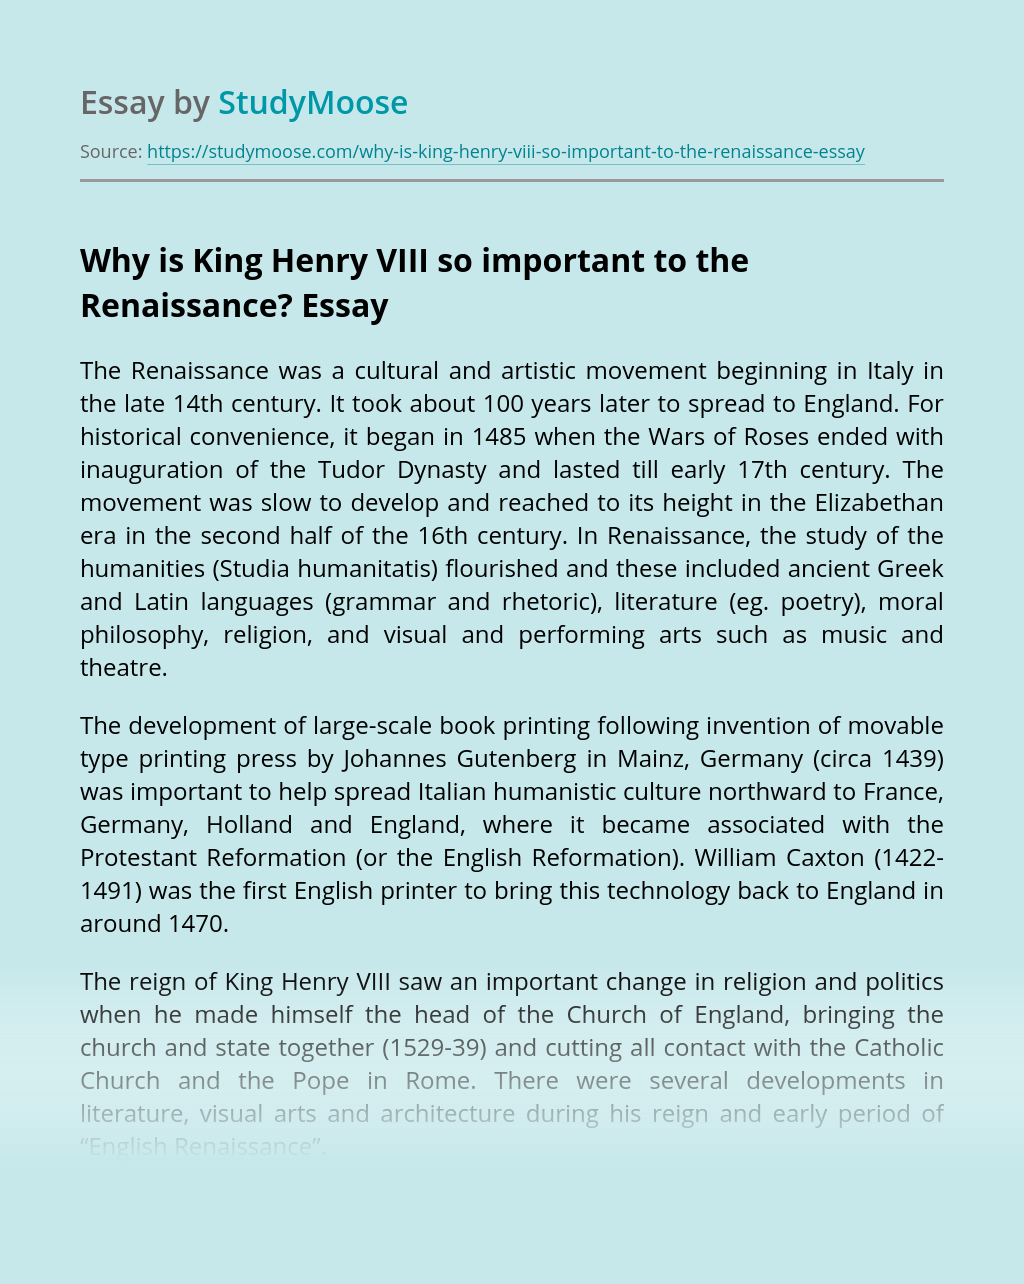 Why is King Henry VIII so important to the Renaissance?